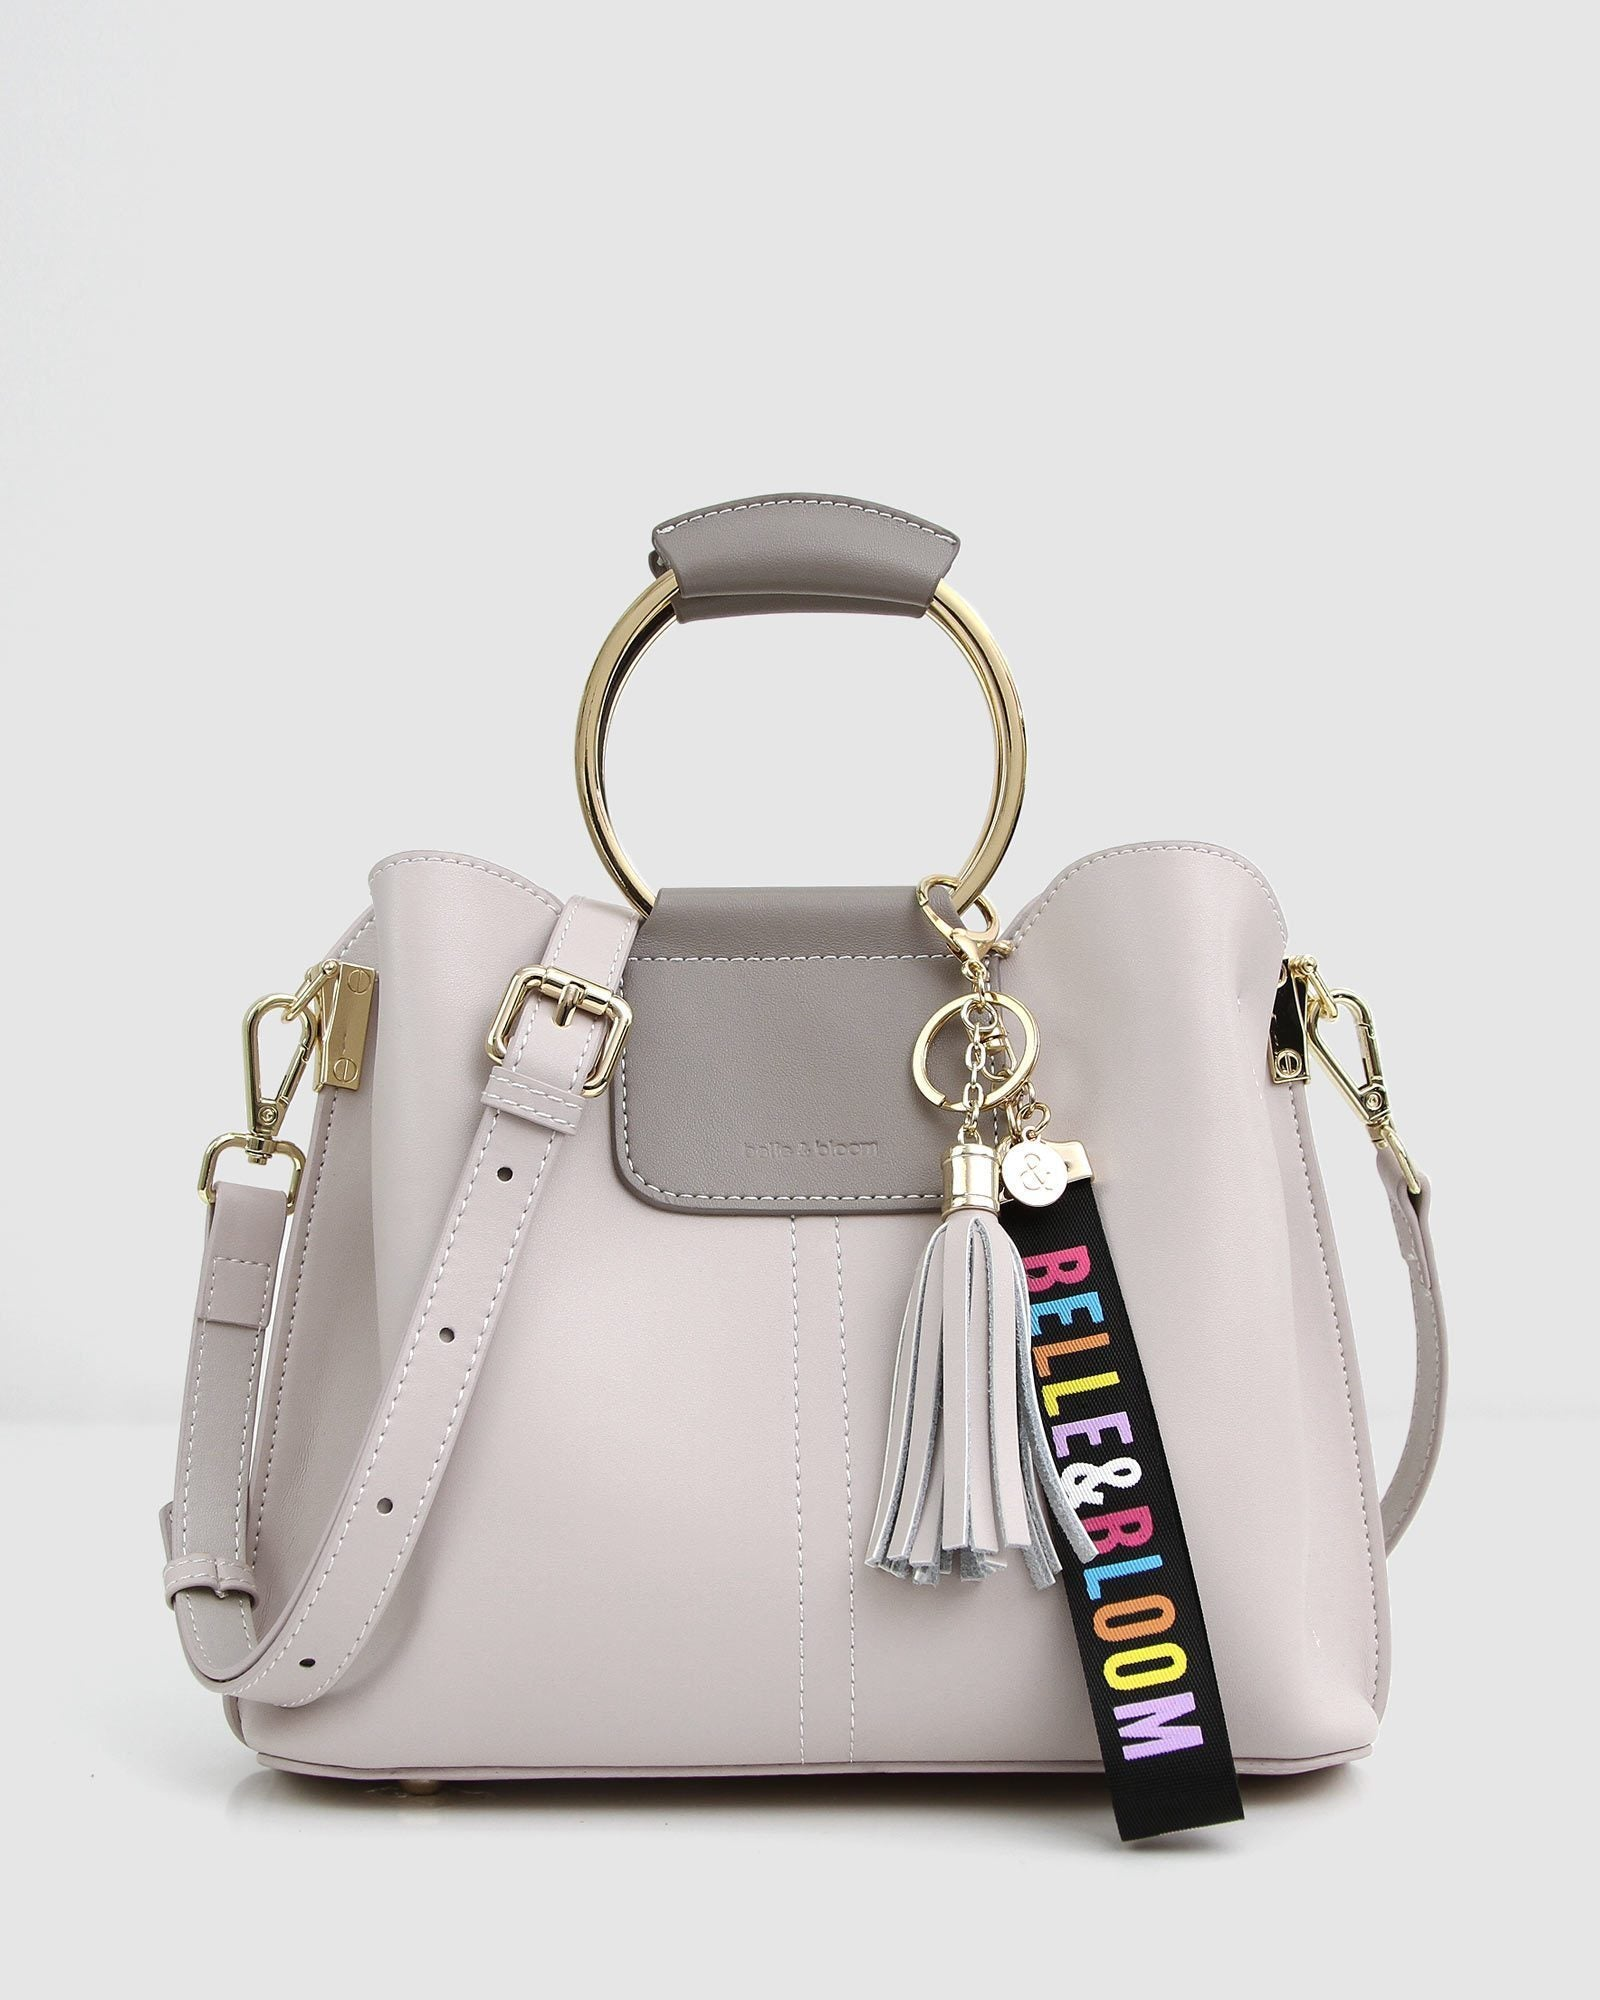 Twilight Leather Cross-Body Bag - Cream / Grey